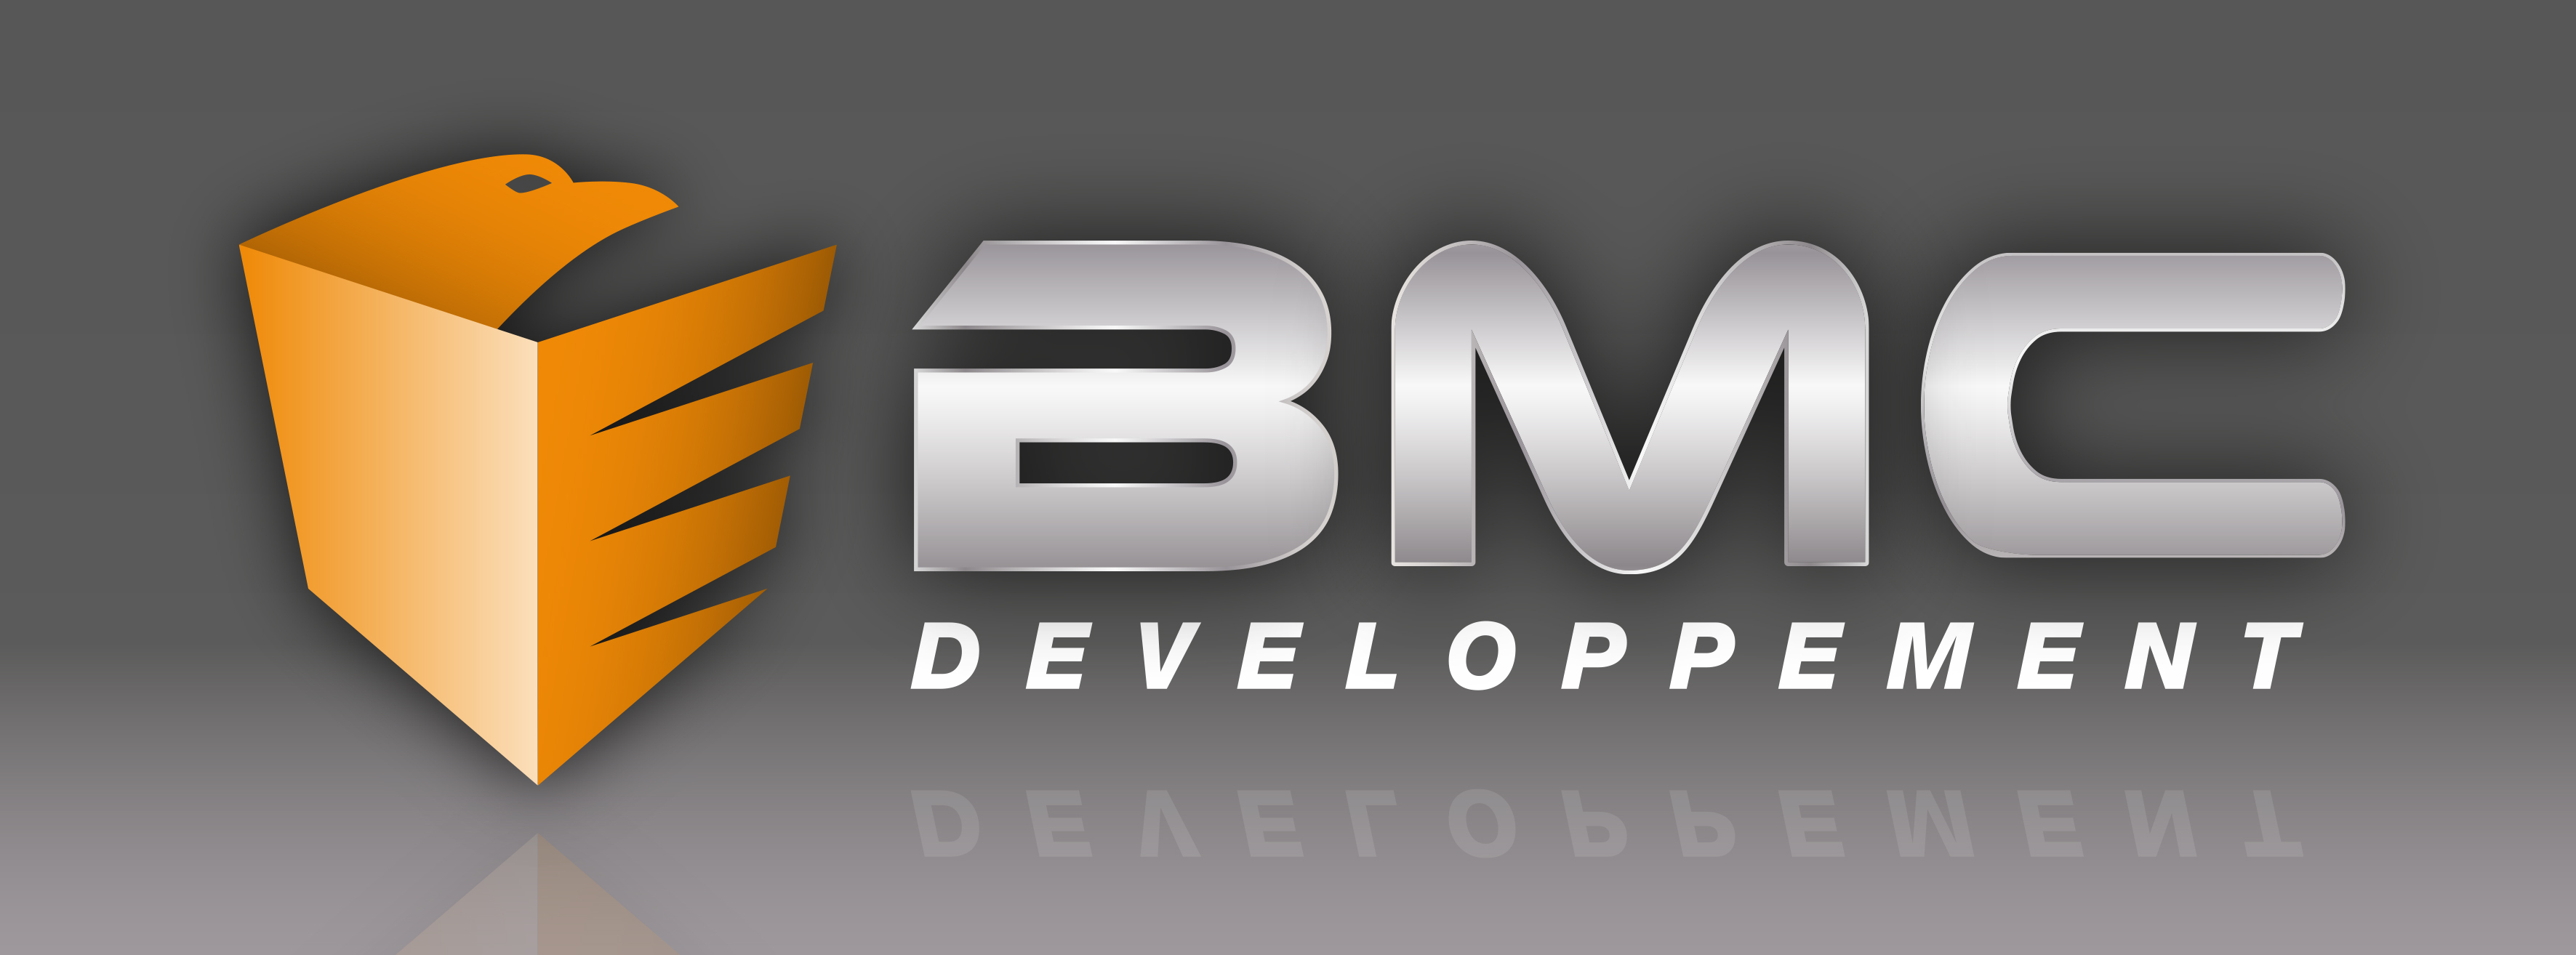 LOGO-BMC-DEVELOPPEMENT-MAGNETIK6COMMUNICATION6LYON